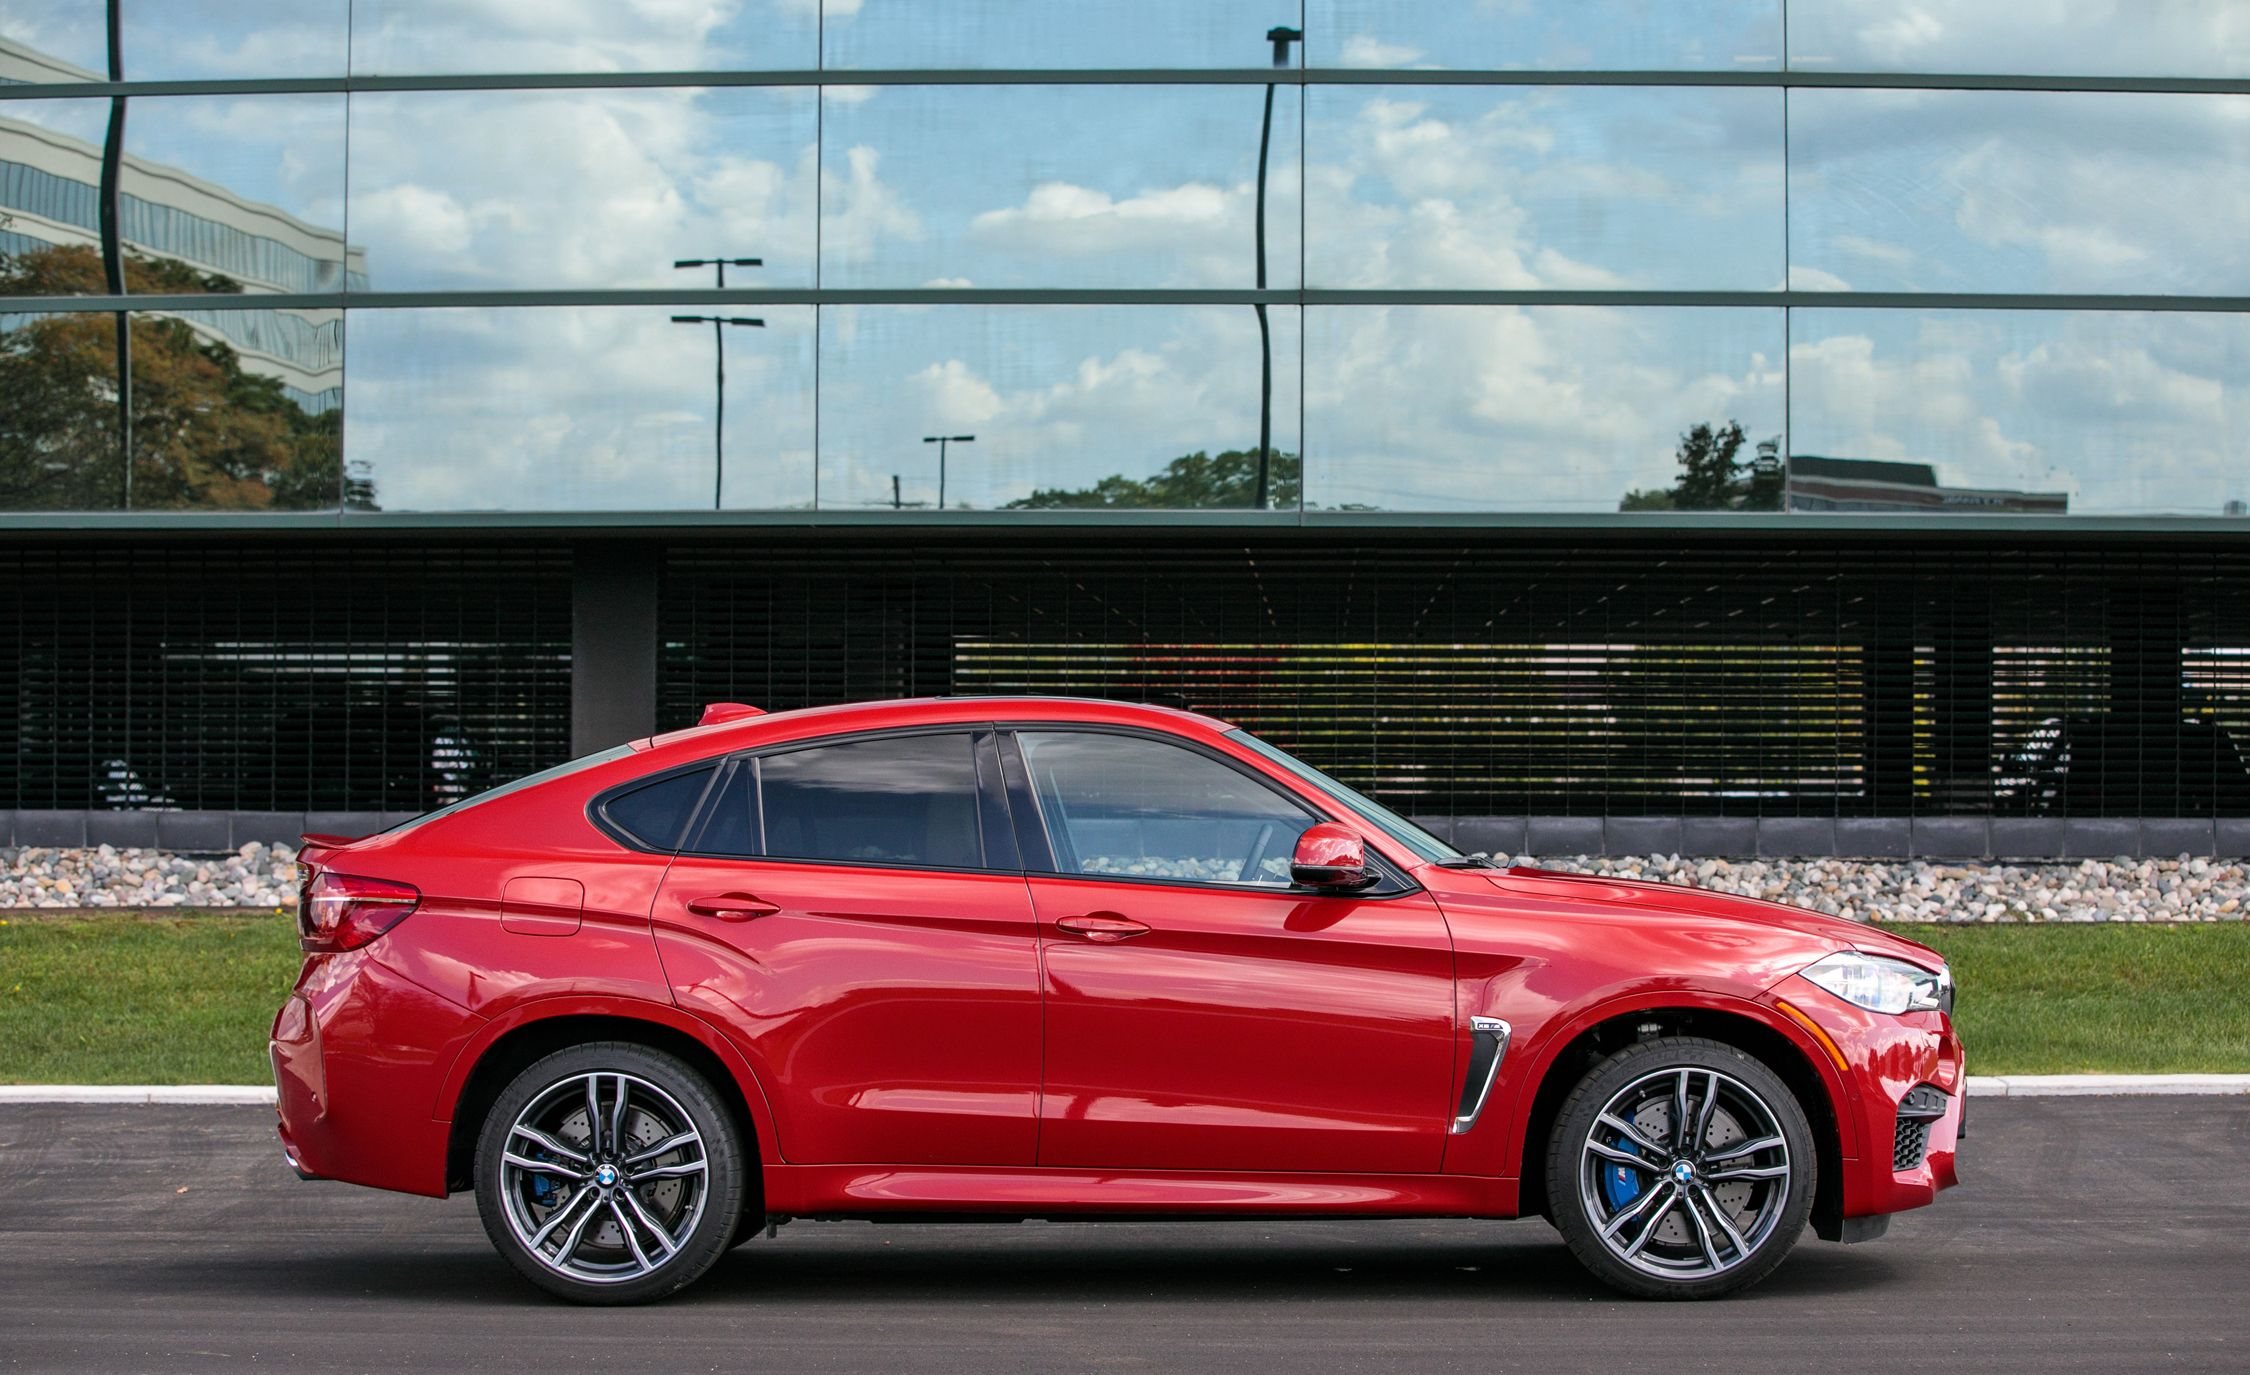 2017 Bmw X6 M Interior Review Car And Driver